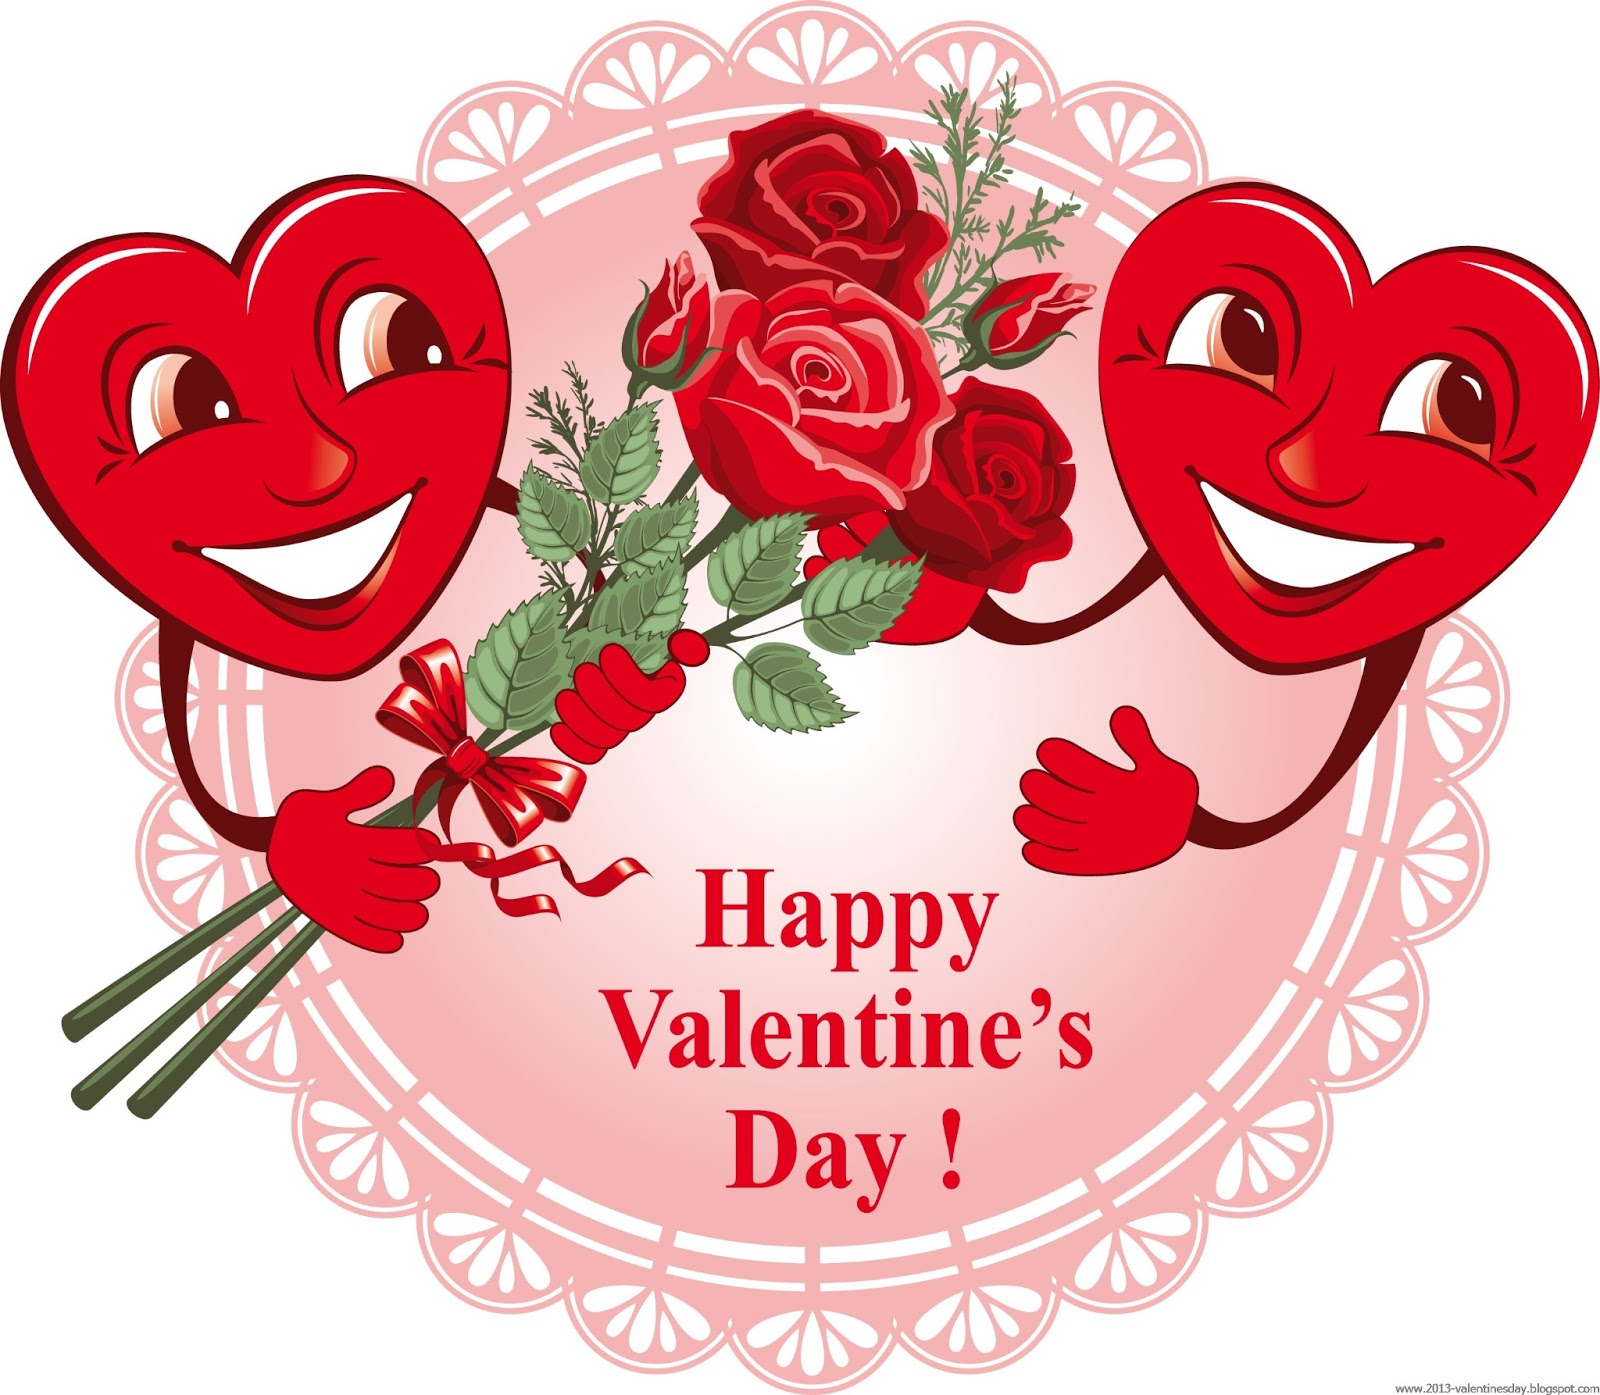 Moving clipart happy valentines day #7